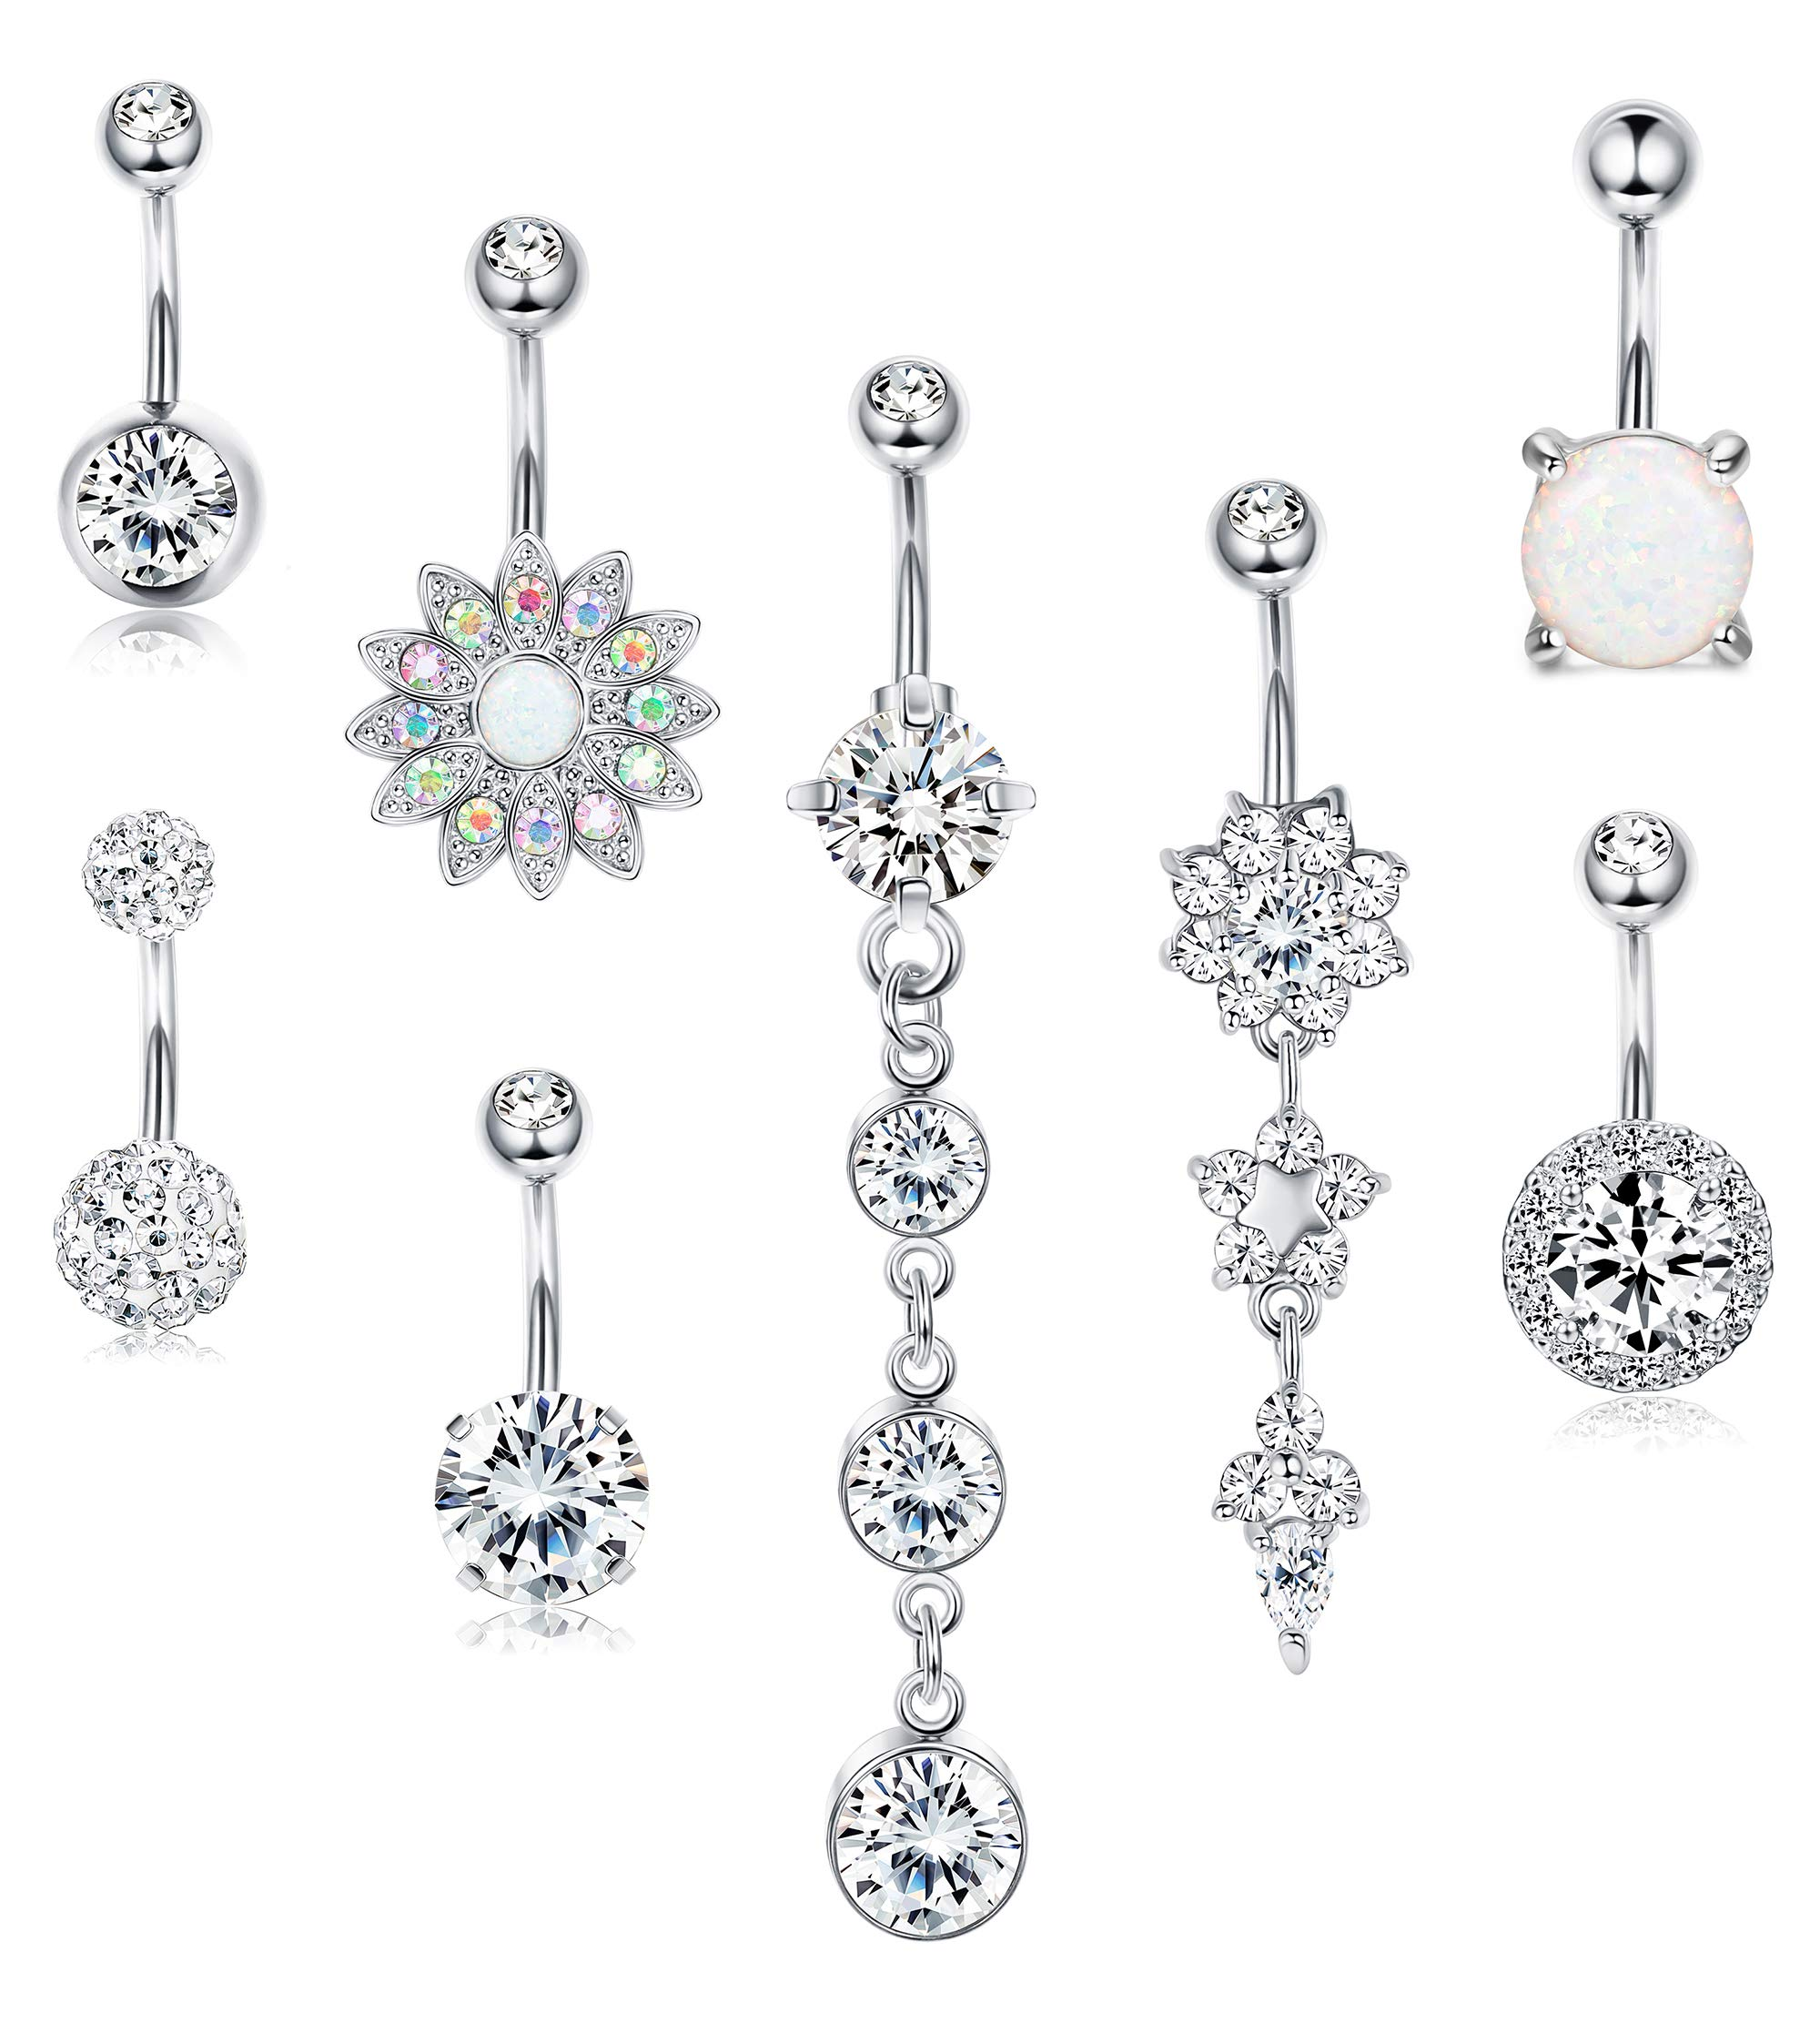 LOYALLOOK 8PCS 14G Surgical Steel Belly Button Rings Dangle for Women Girls Navel Rings Opal Flower CZ Body Piercing Silver Rose Gold Tone